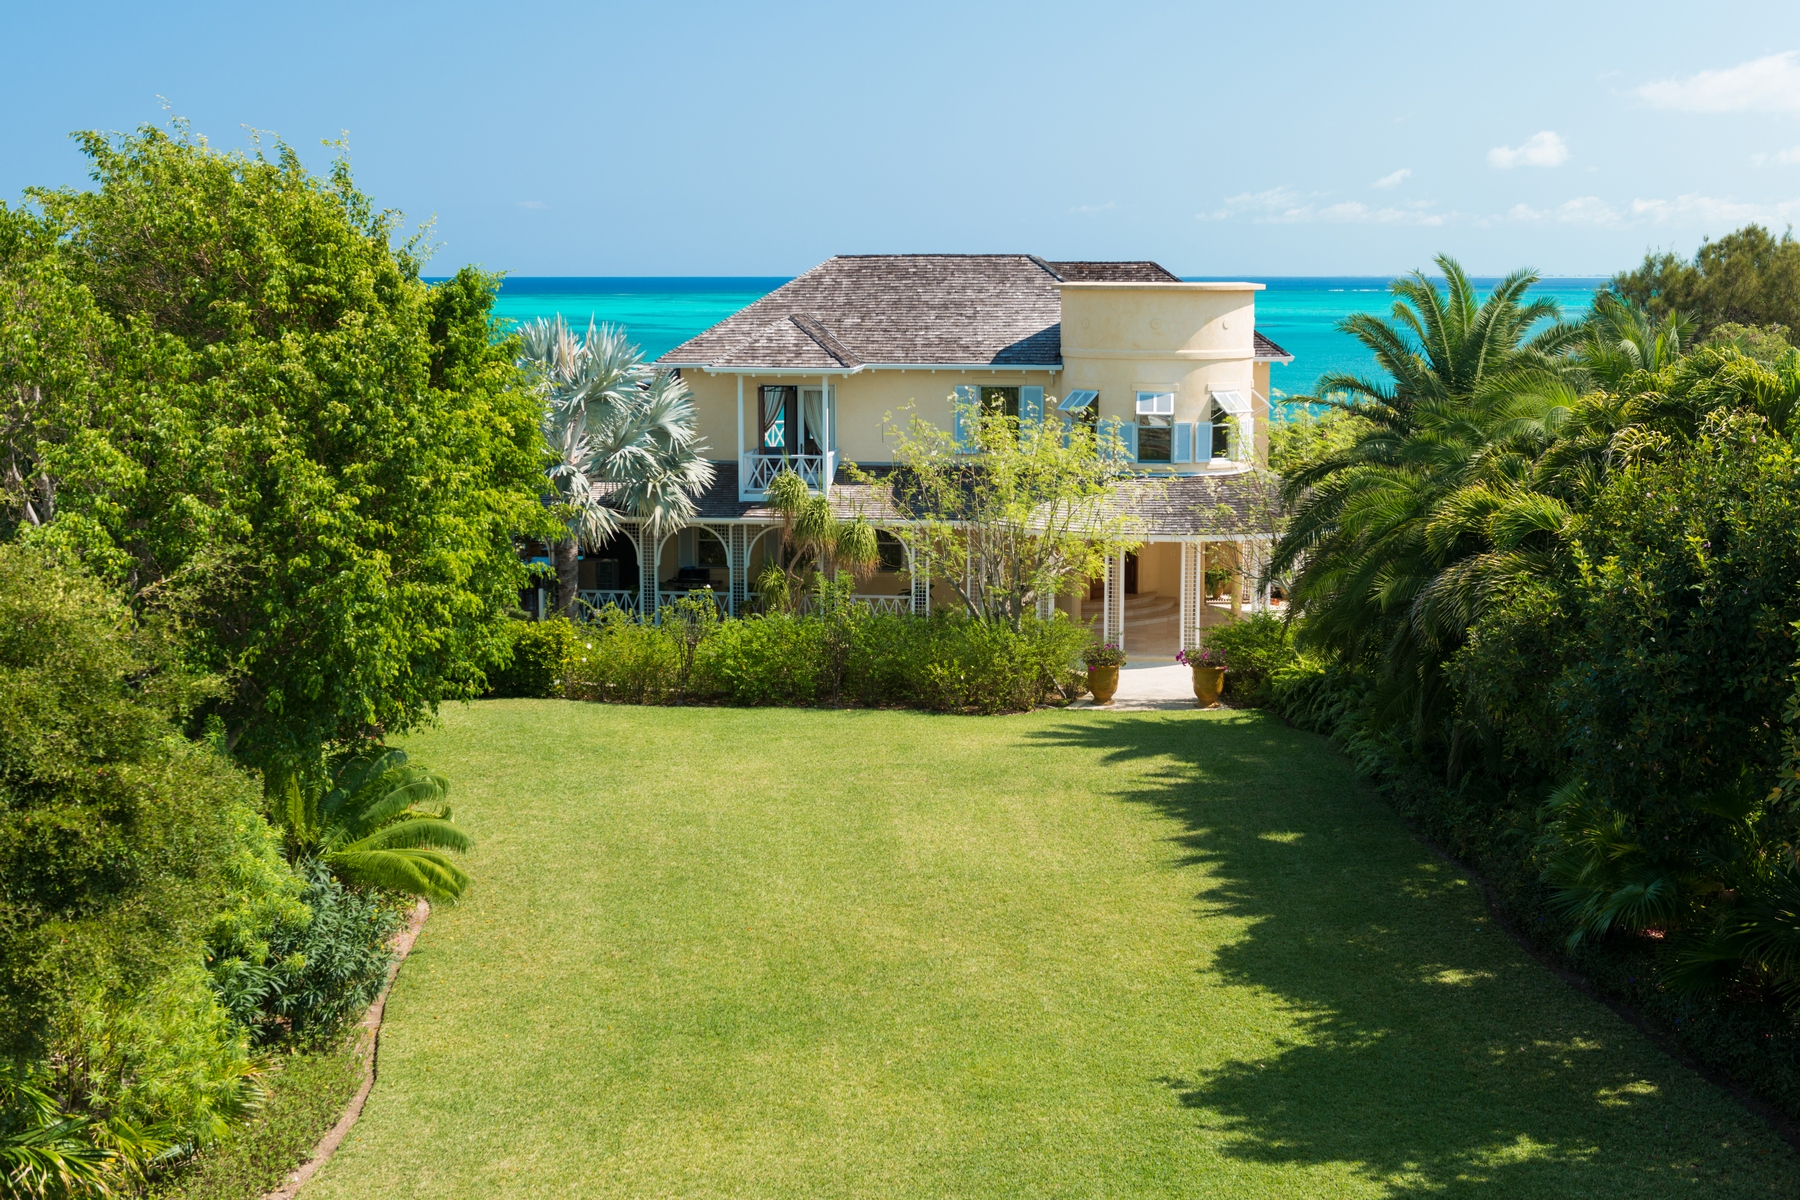 Single Family Home for Sale at Bluecay Beachfront Thompson Cove, Providenciales TCI Turks And Caicos Islands